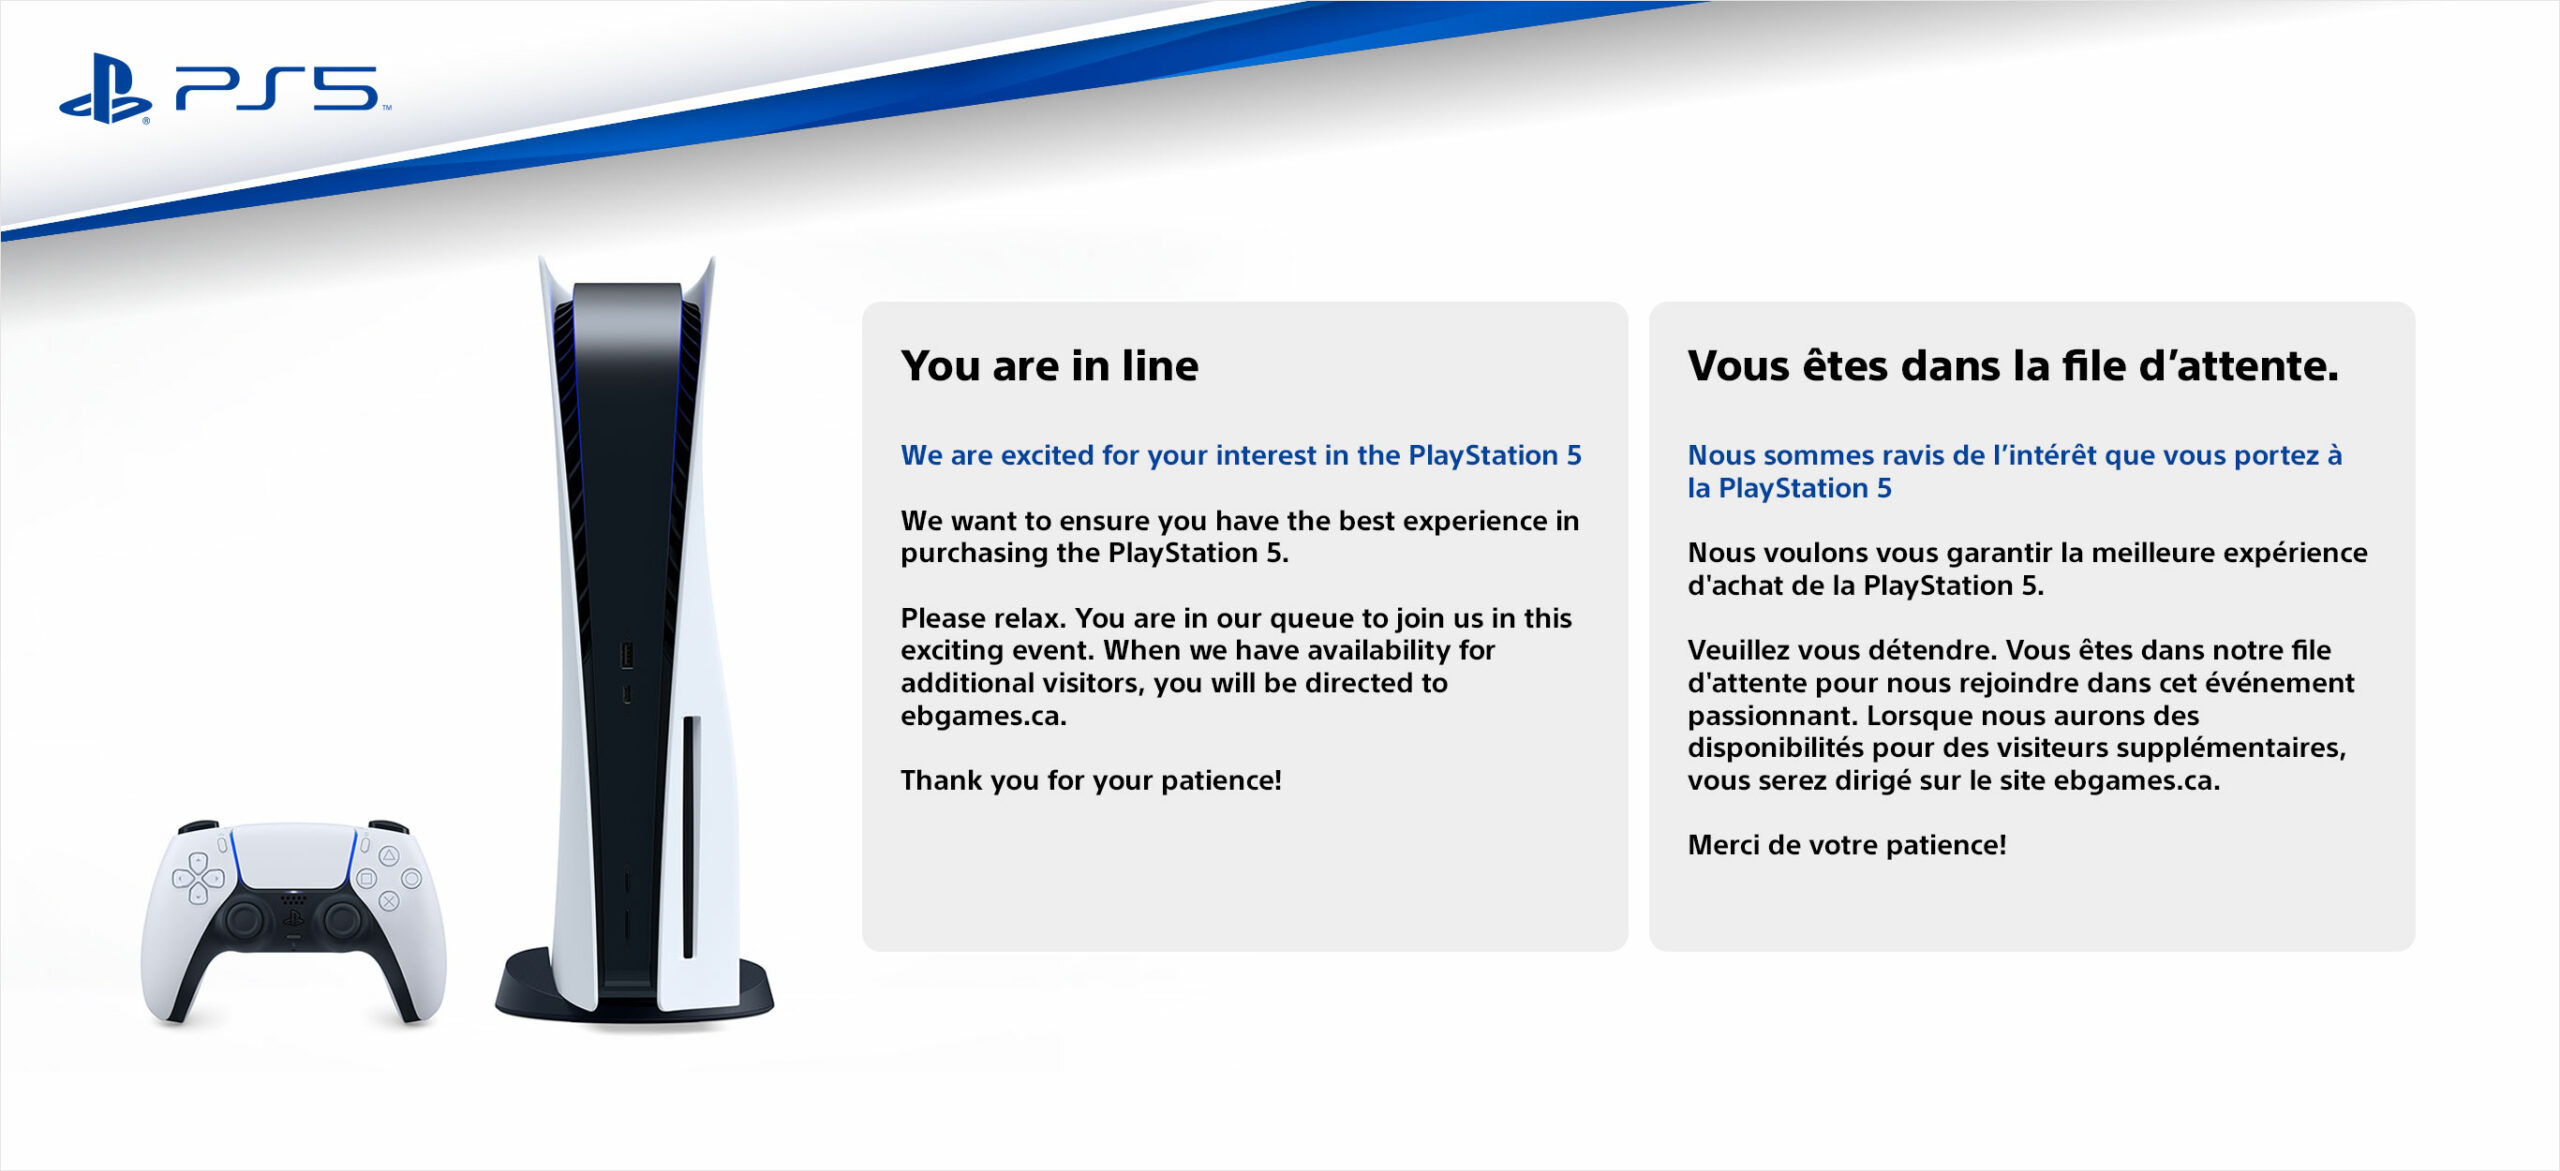 PlayStation 5 EB games waiting room